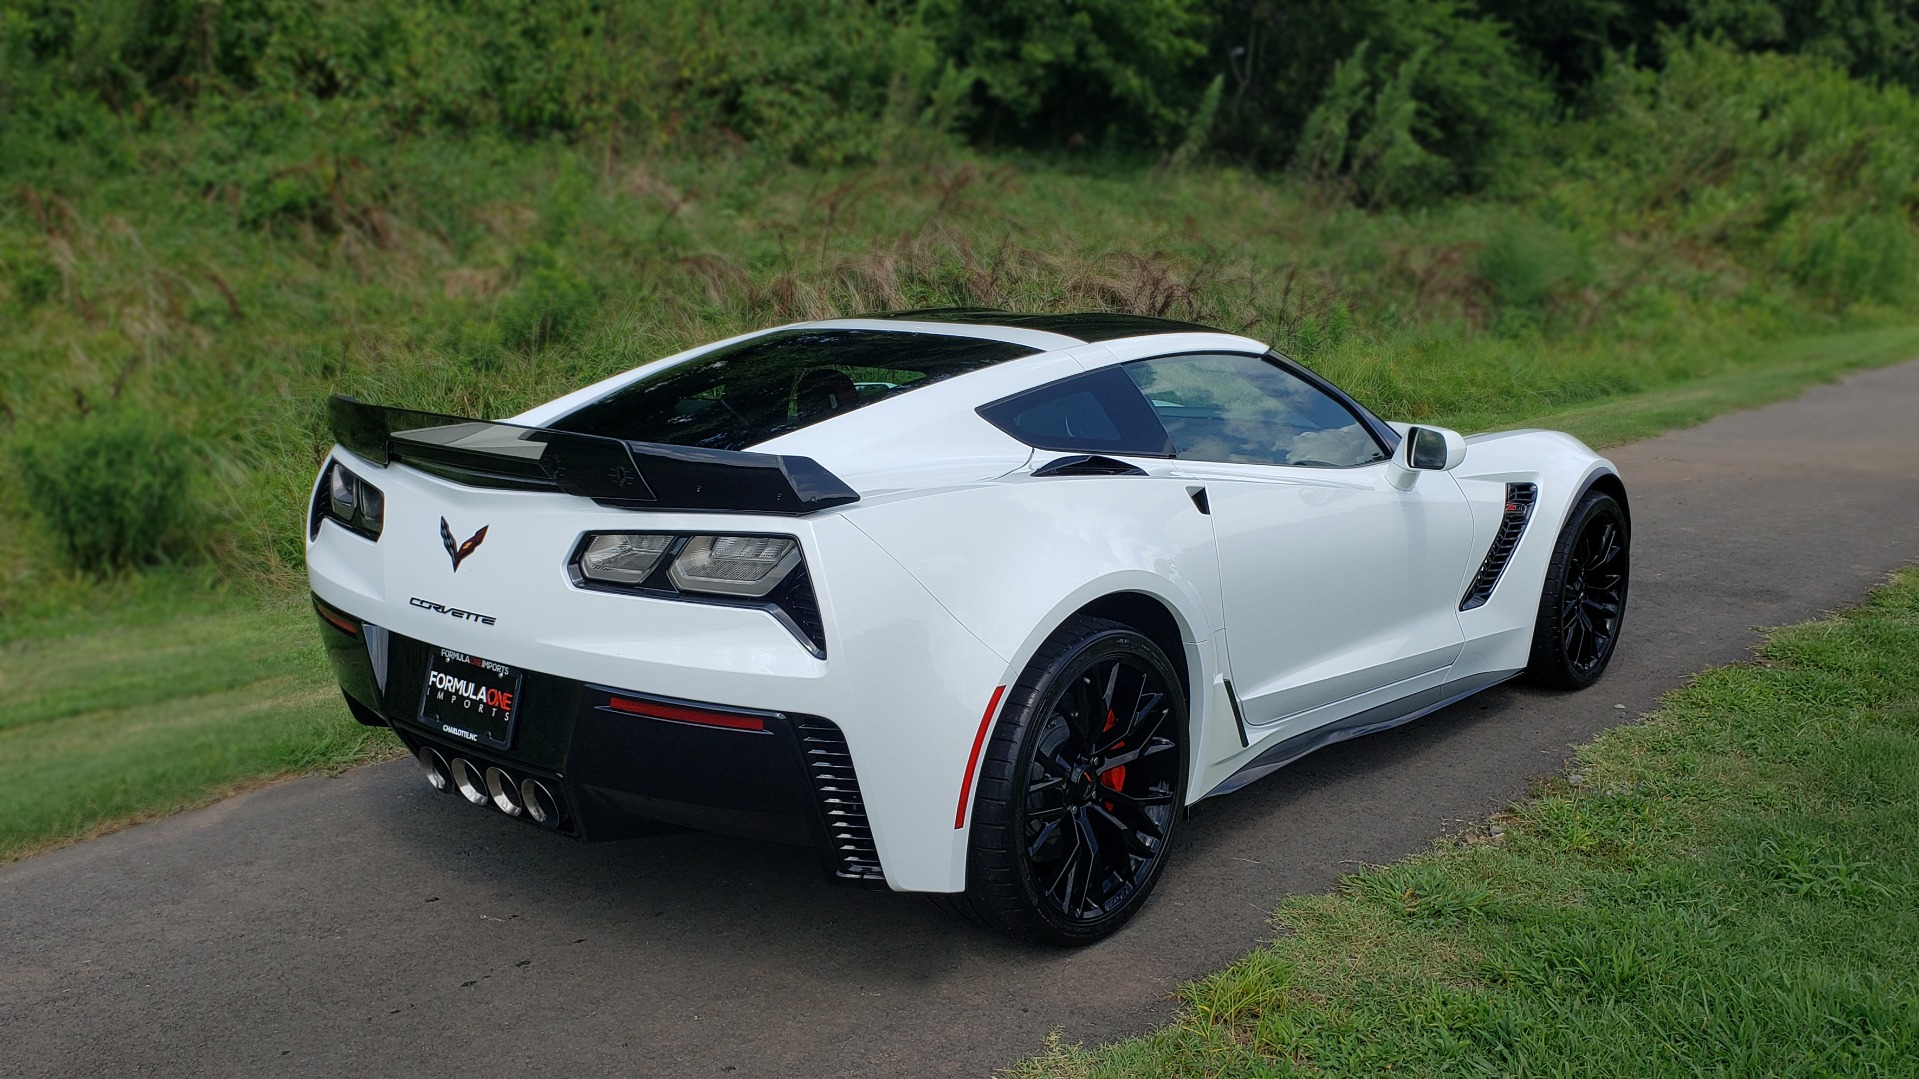 Used 2015 Chevrolet CORVETTE Z06 3LZ / 6.2L SUPERCHARGED 650HP / NAV / BOSE / REARVIEW for sale Sold at Formula Imports in Charlotte NC 28227 5